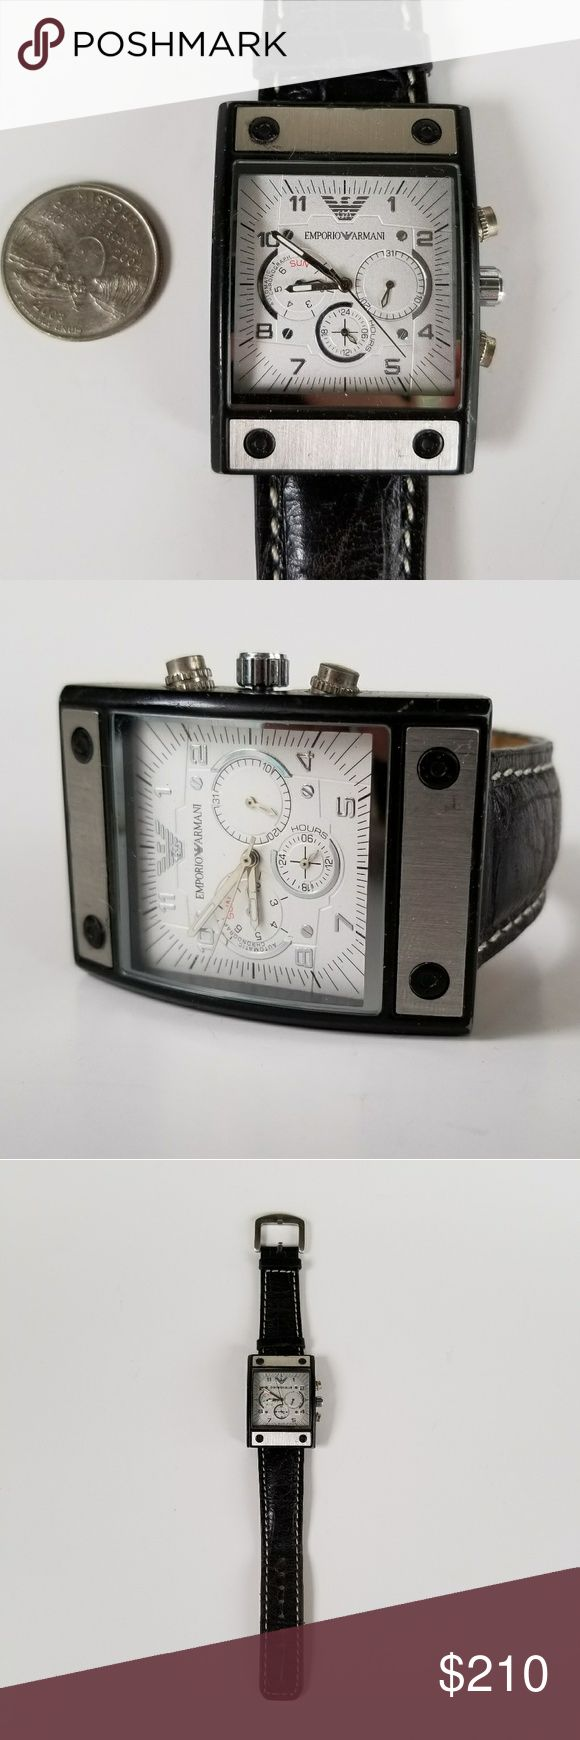 Armani Mens Watch Authentic Armani water resistant men's watch with leather band and stainless steel detail. Used good condition and working perfectly! Serial#1211G Emporio Armani Accessories Watches